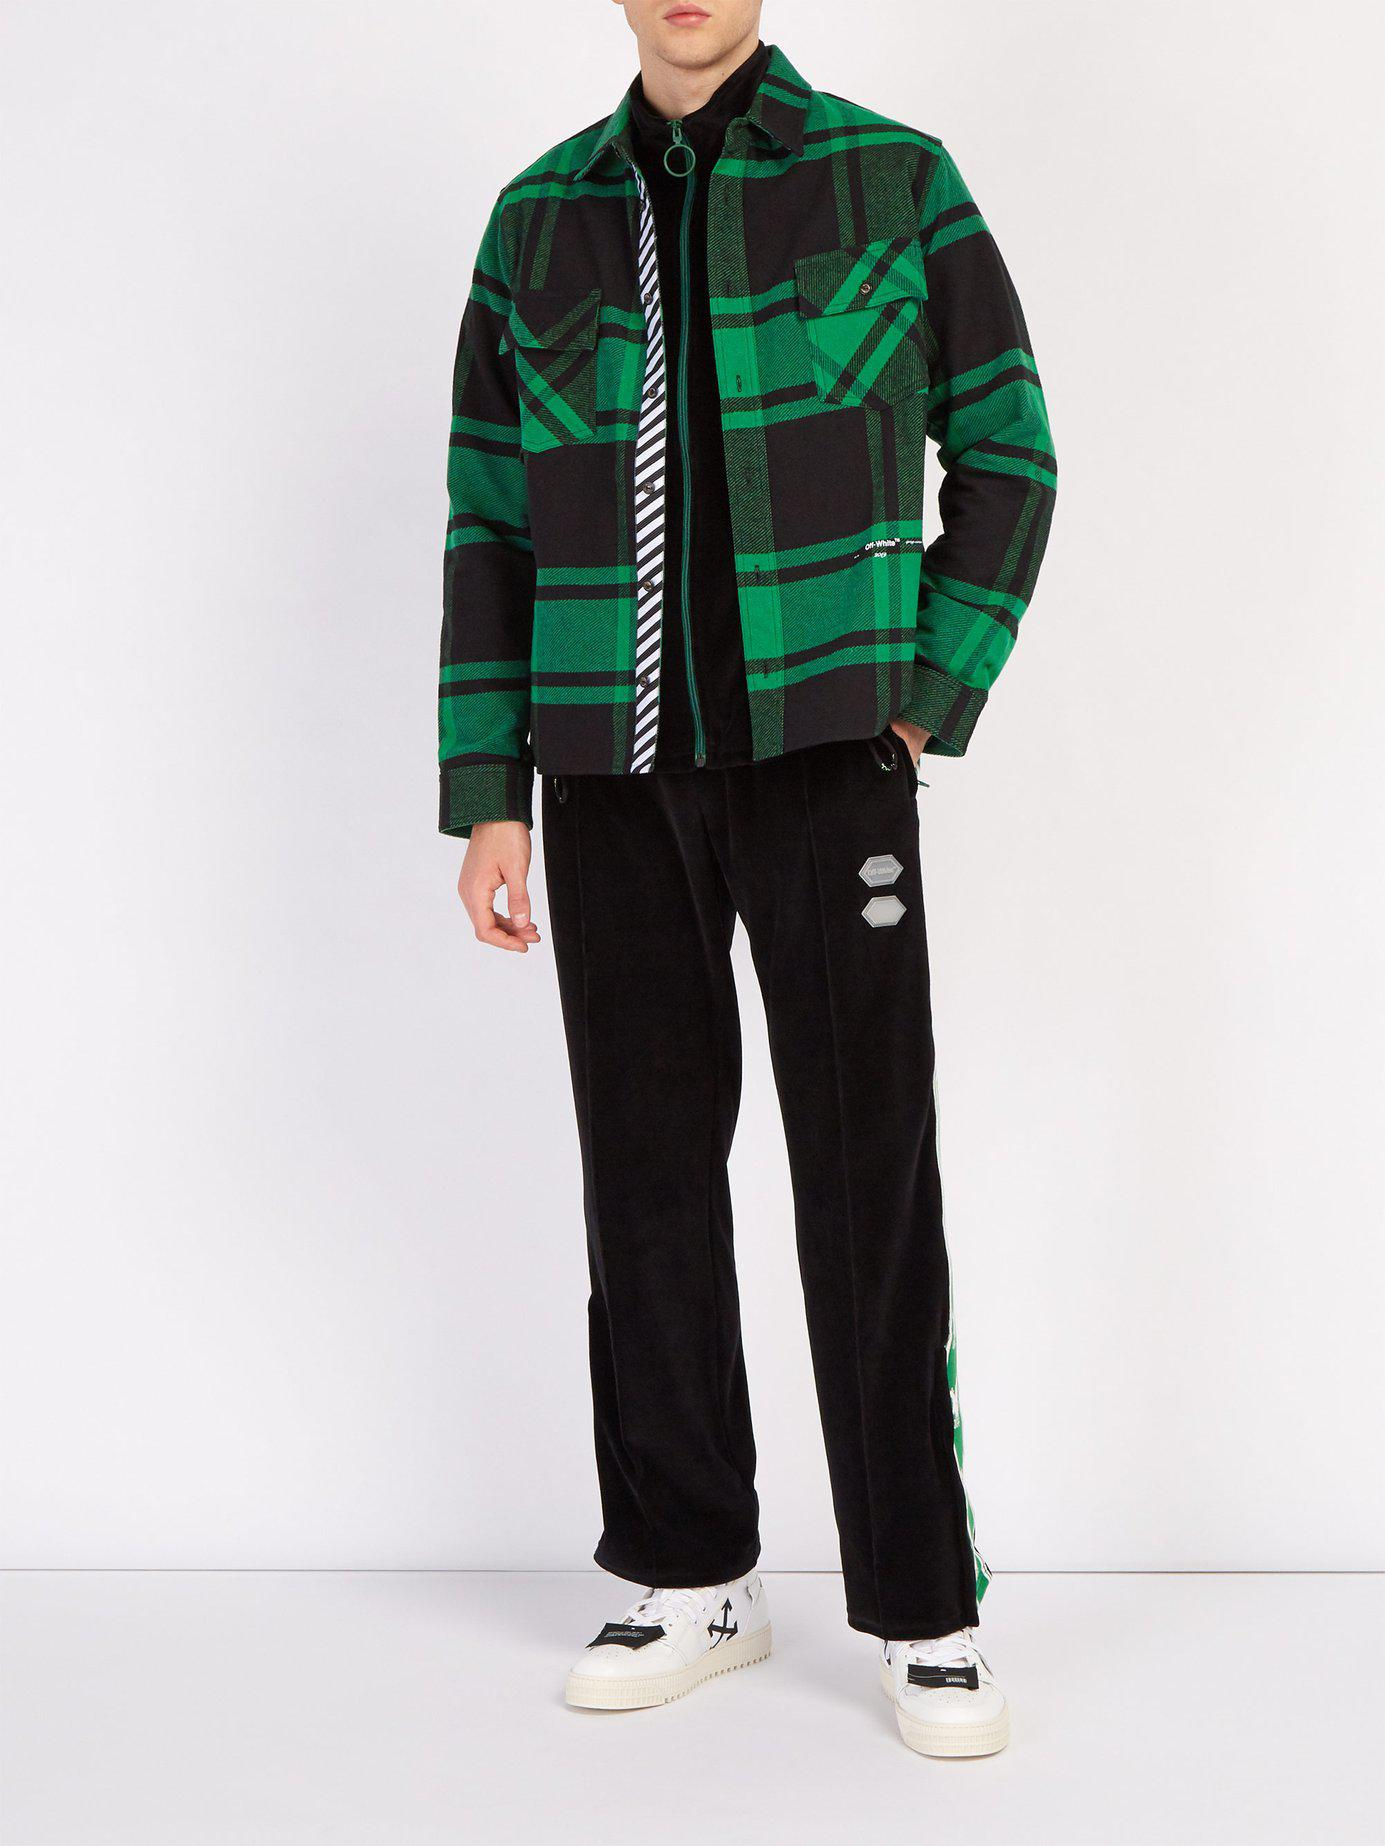 67c0fa55973 Lyst - Off-White c o Virgil Abloh Checked Cotton Blend Flannel Shirt in  Green for Men